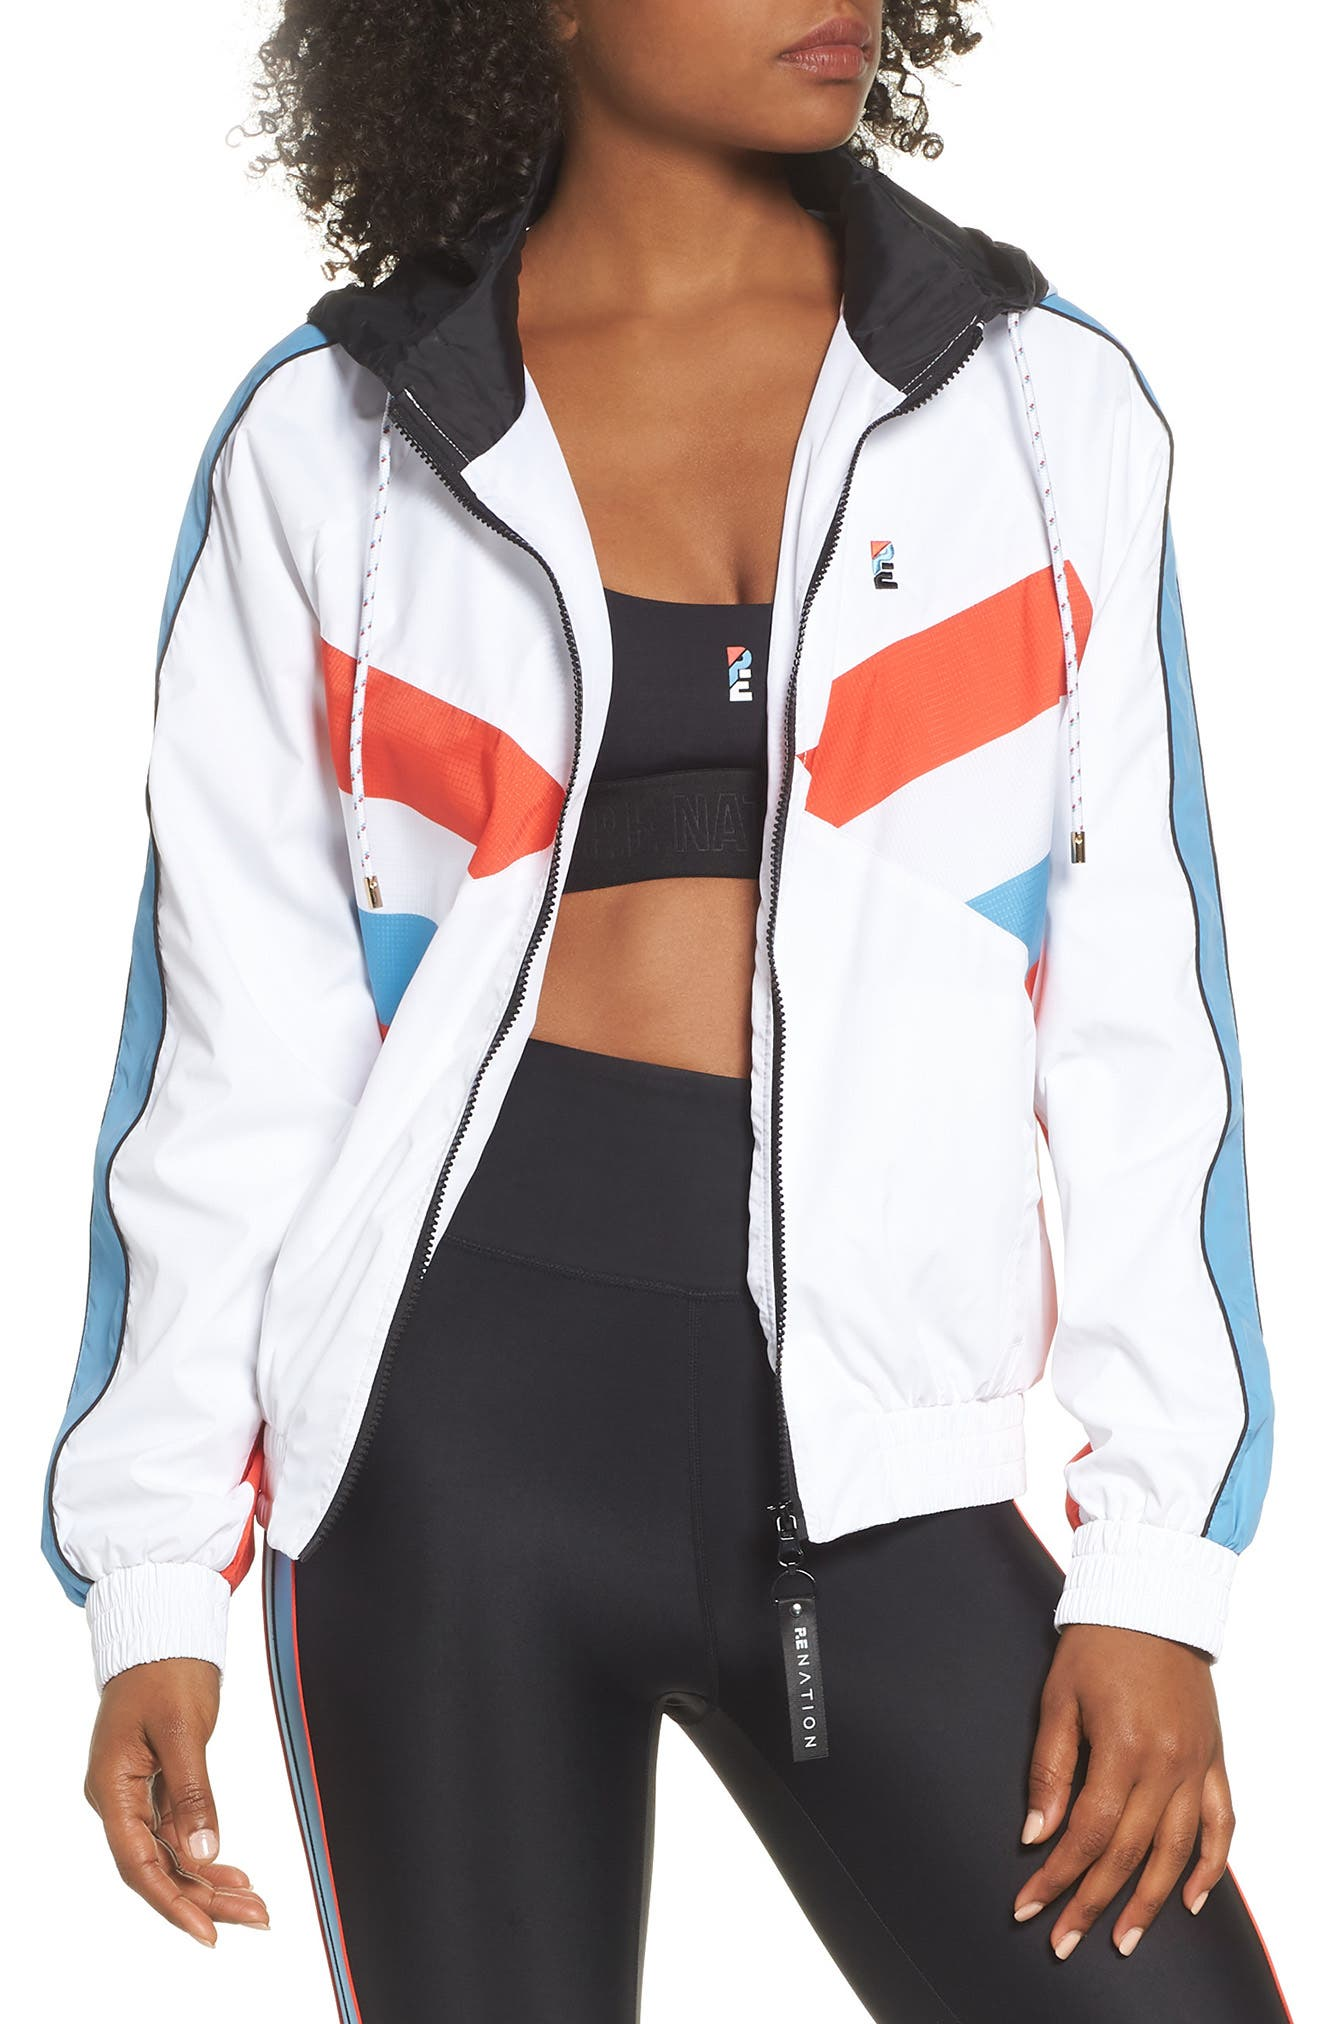 P.E. Nation The Ruck Jacket,                         Main,                         color, WHITE